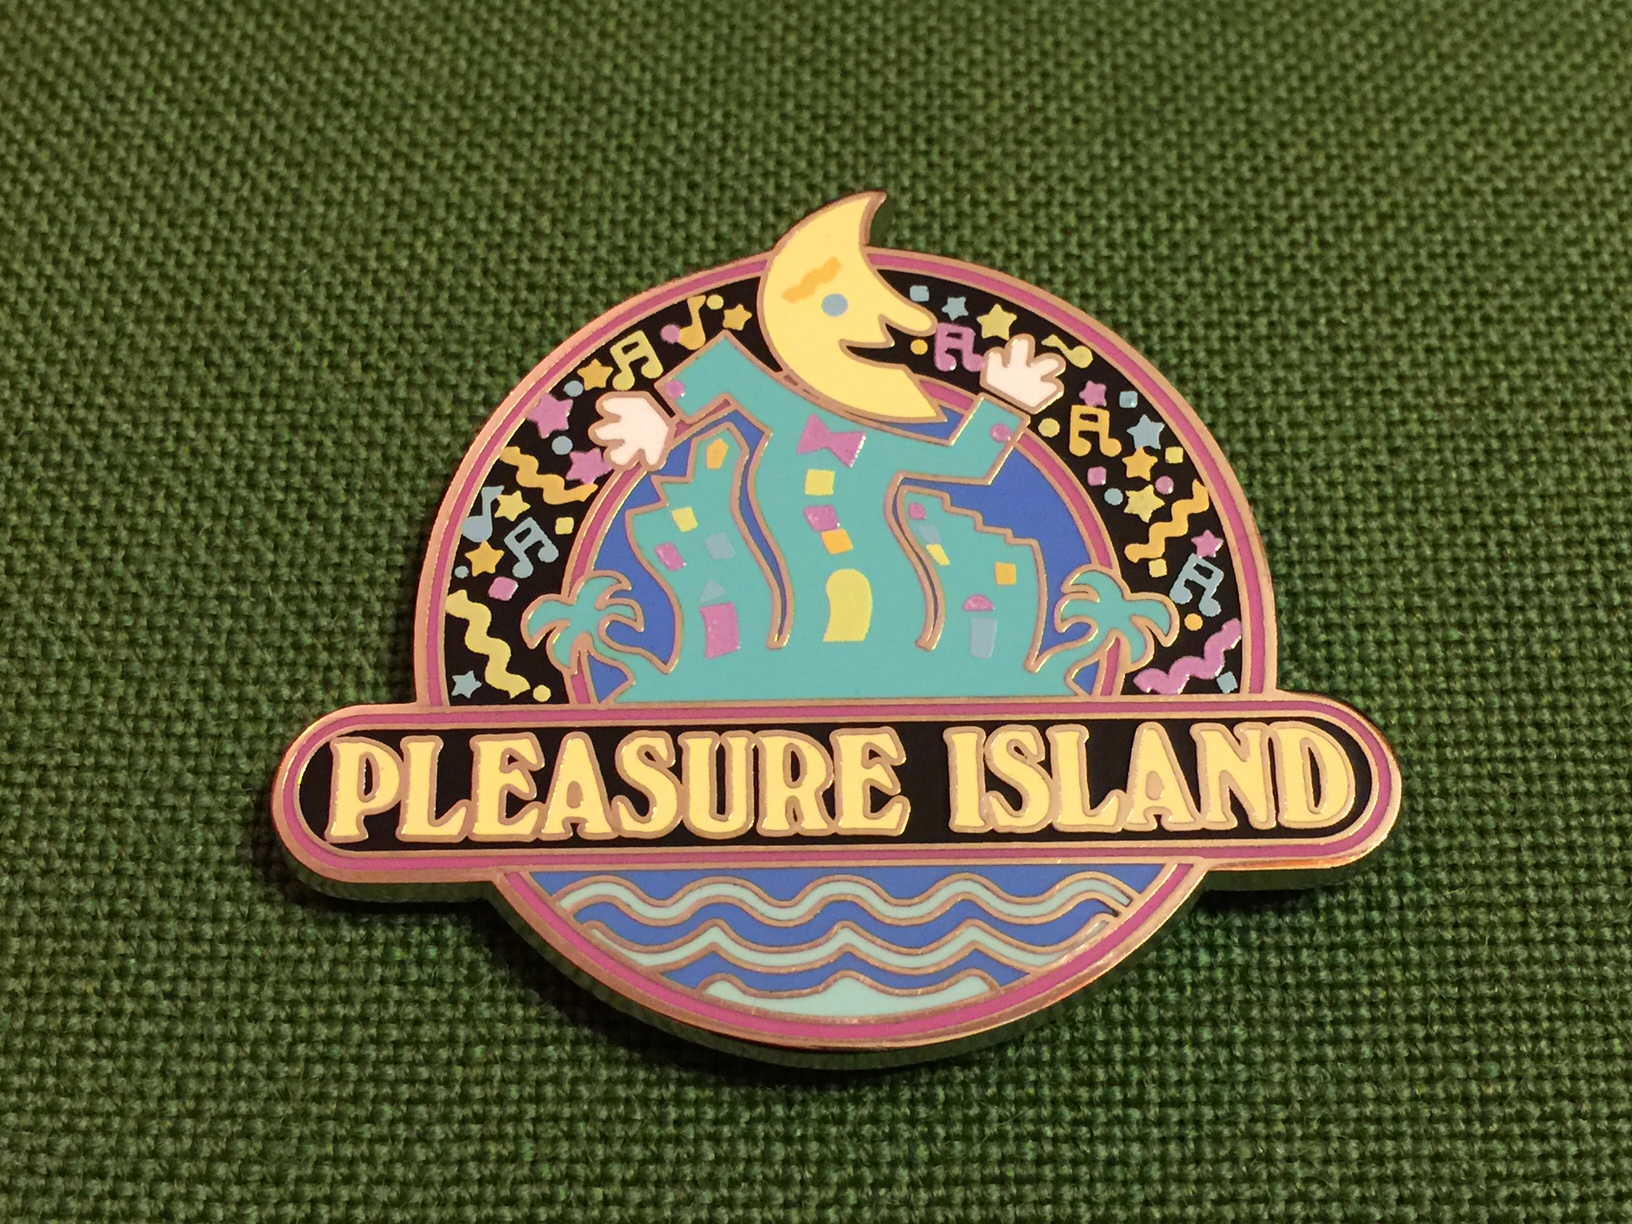 Pleasure island blog — pic 1